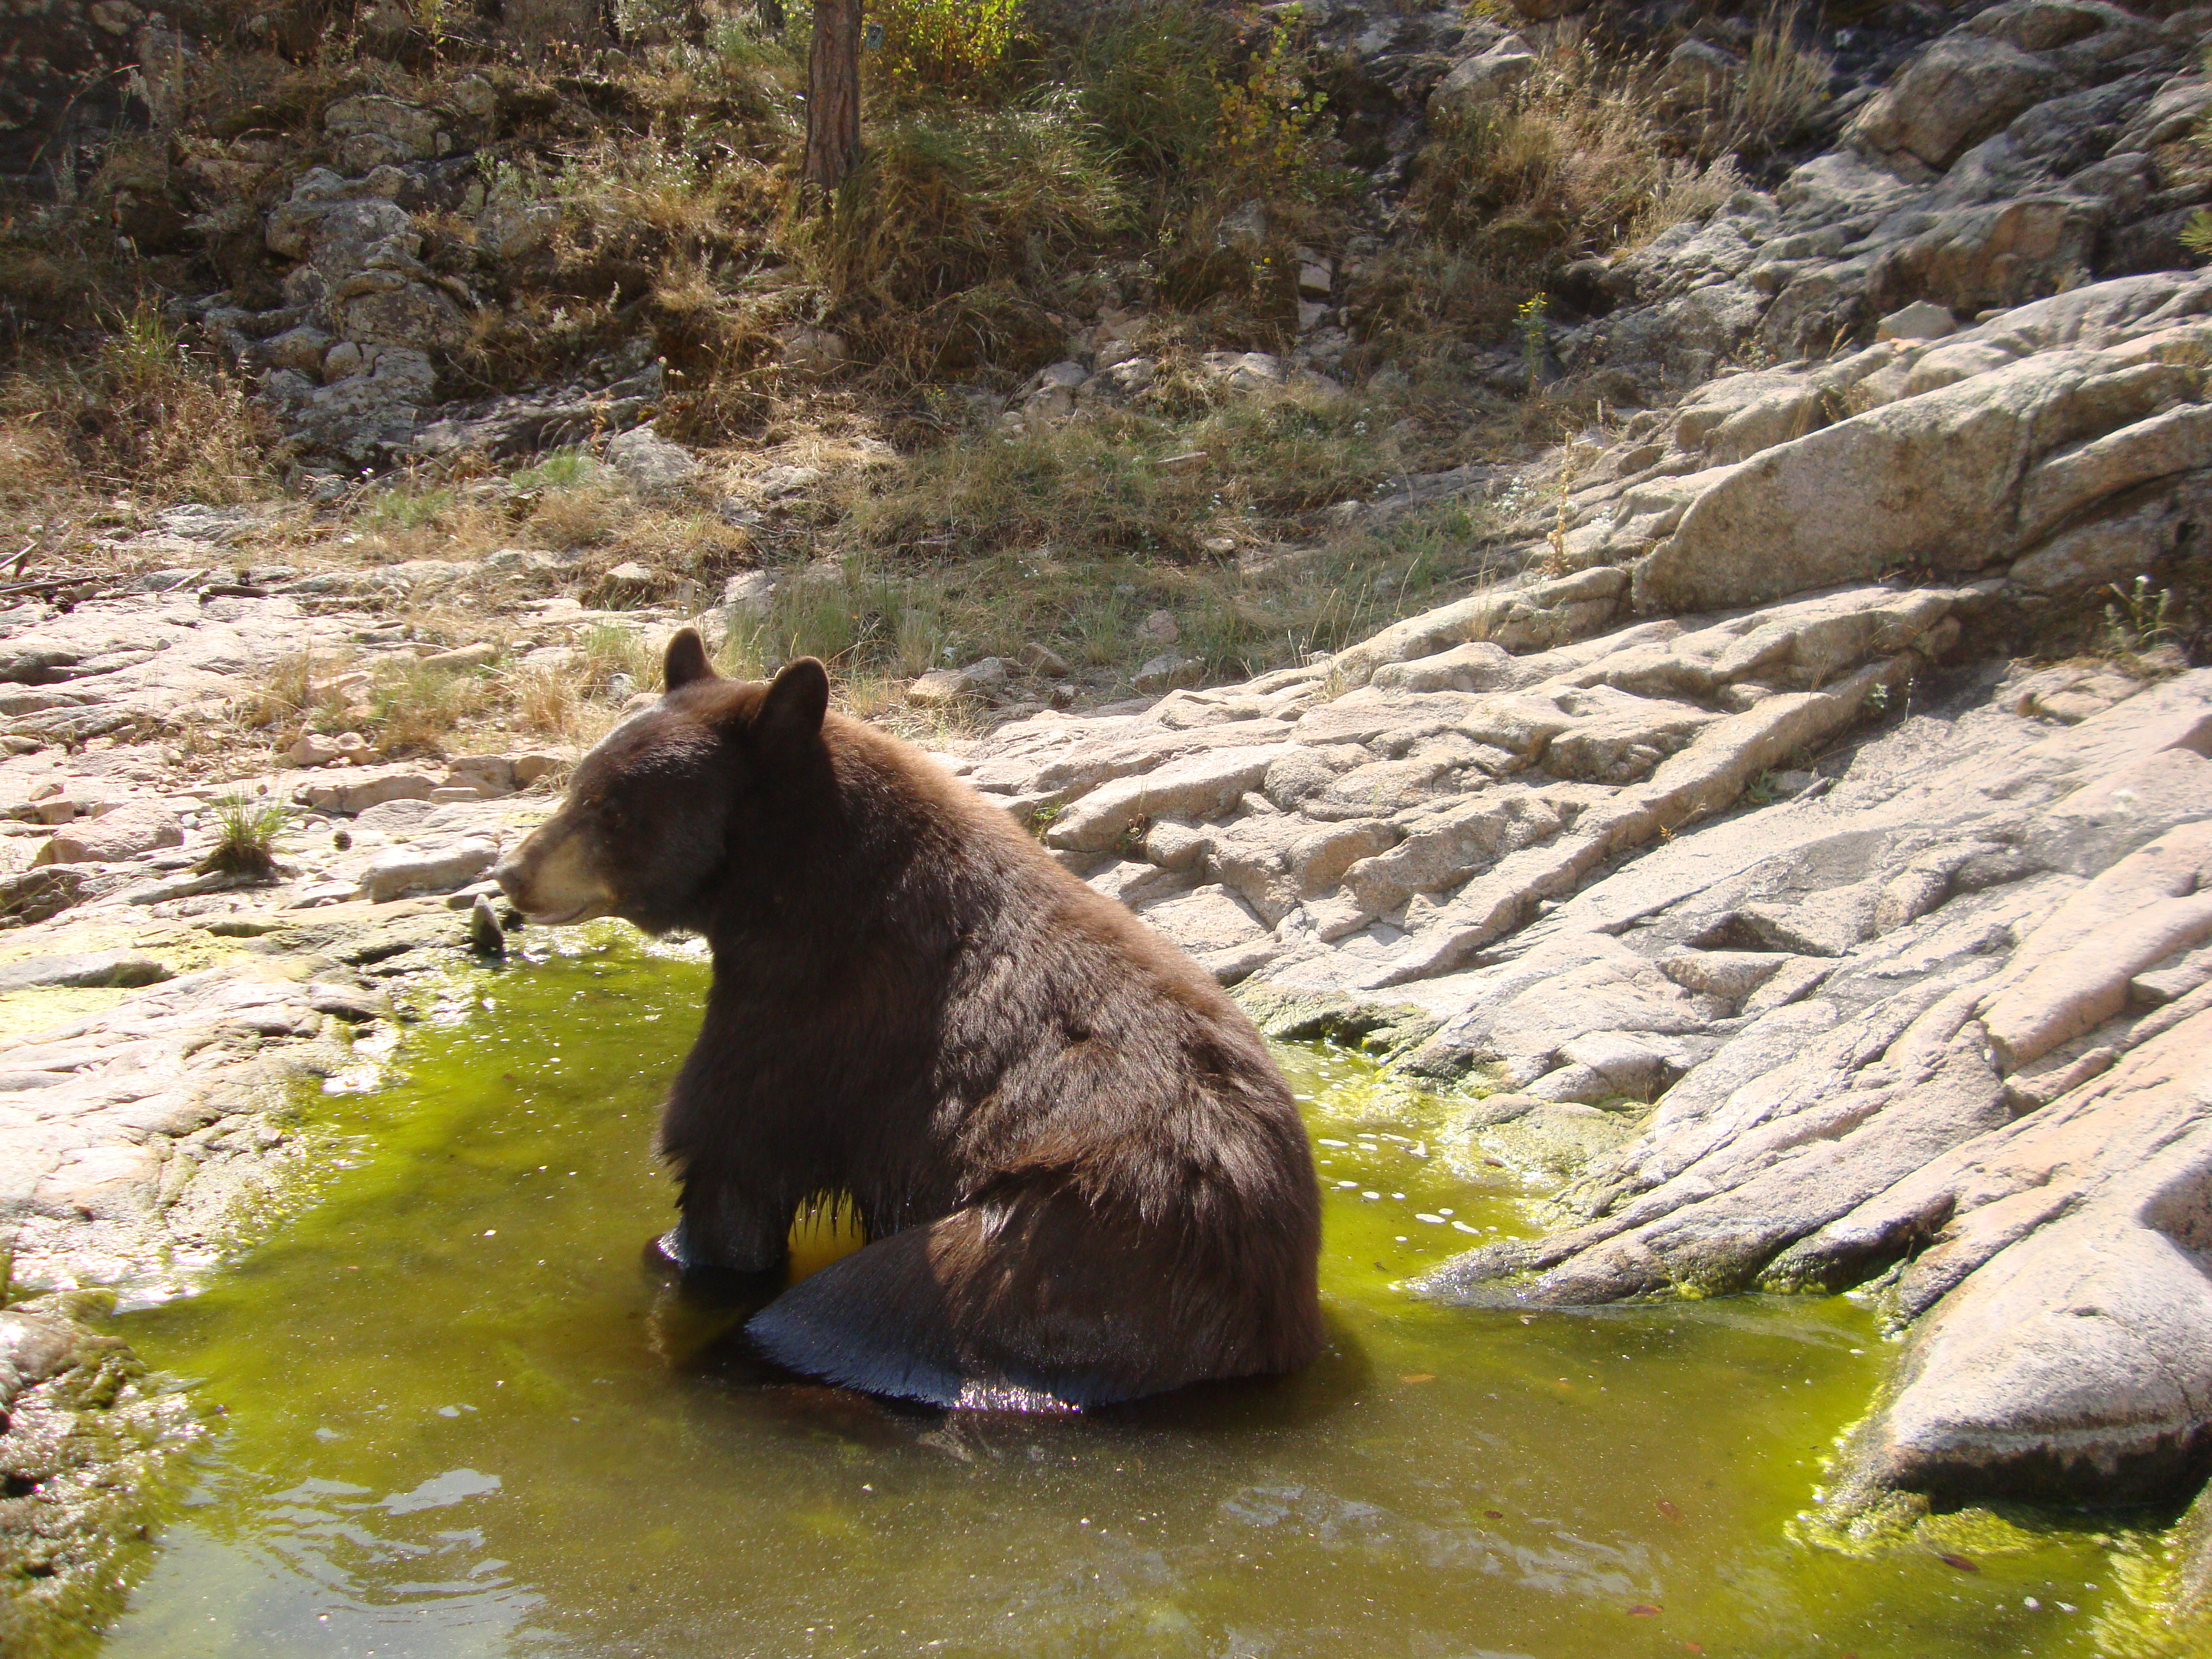 A bear captured bathing in a pond (credit: David Neils)